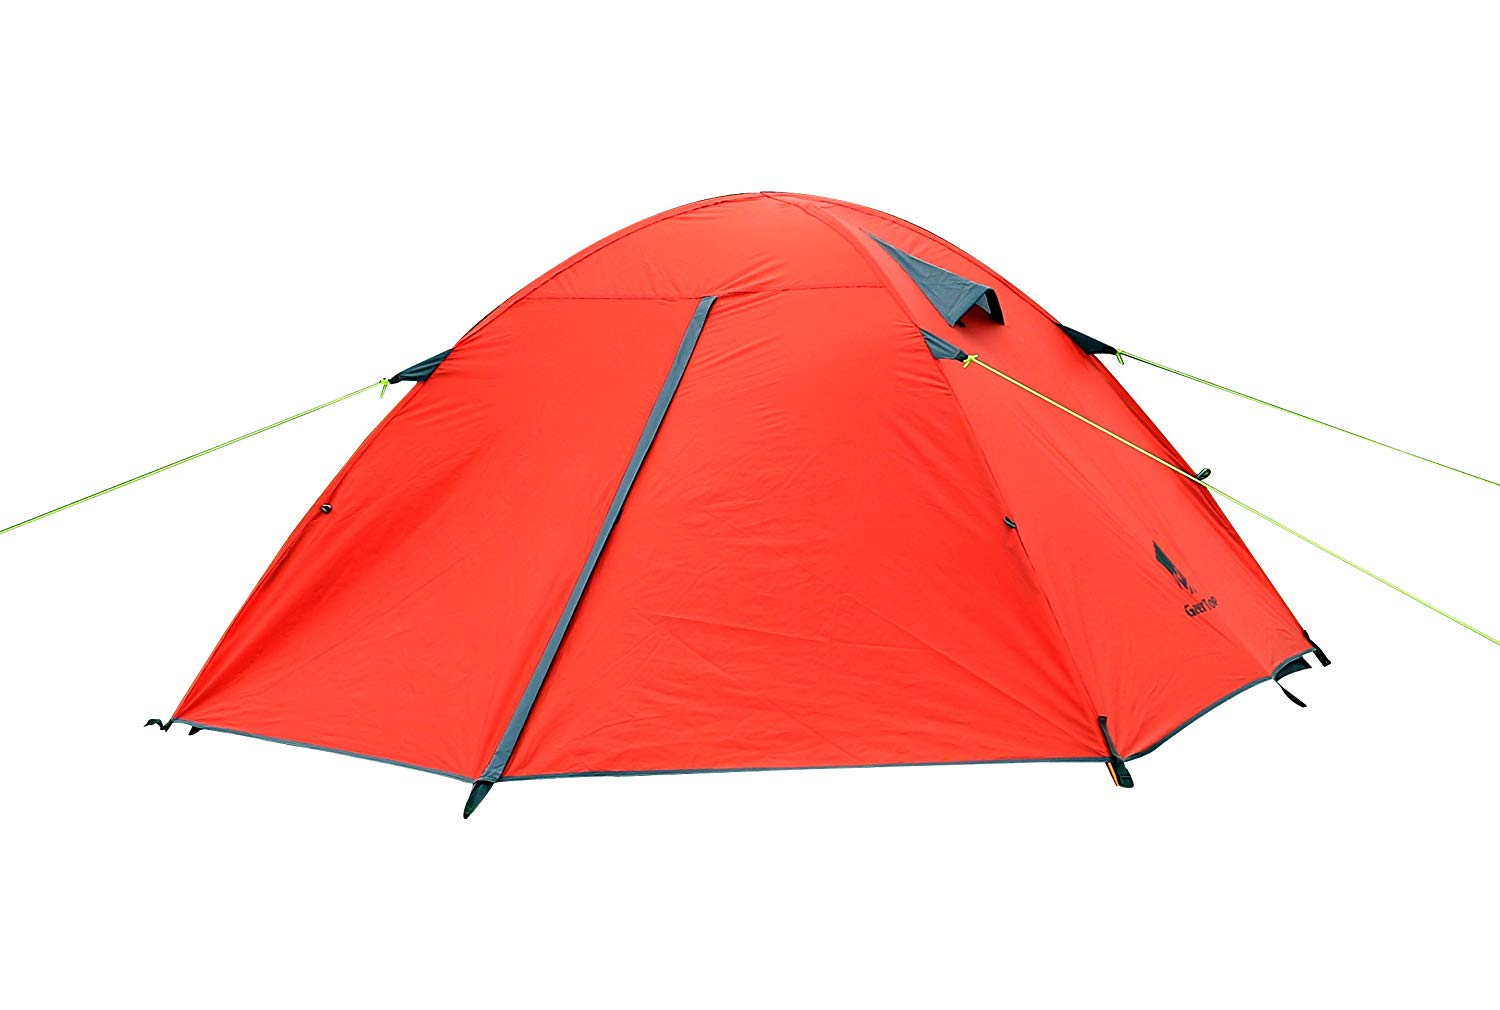 GeerTop Toproad Ⅲ3 Person 3 Season Backpacking Camping Tent